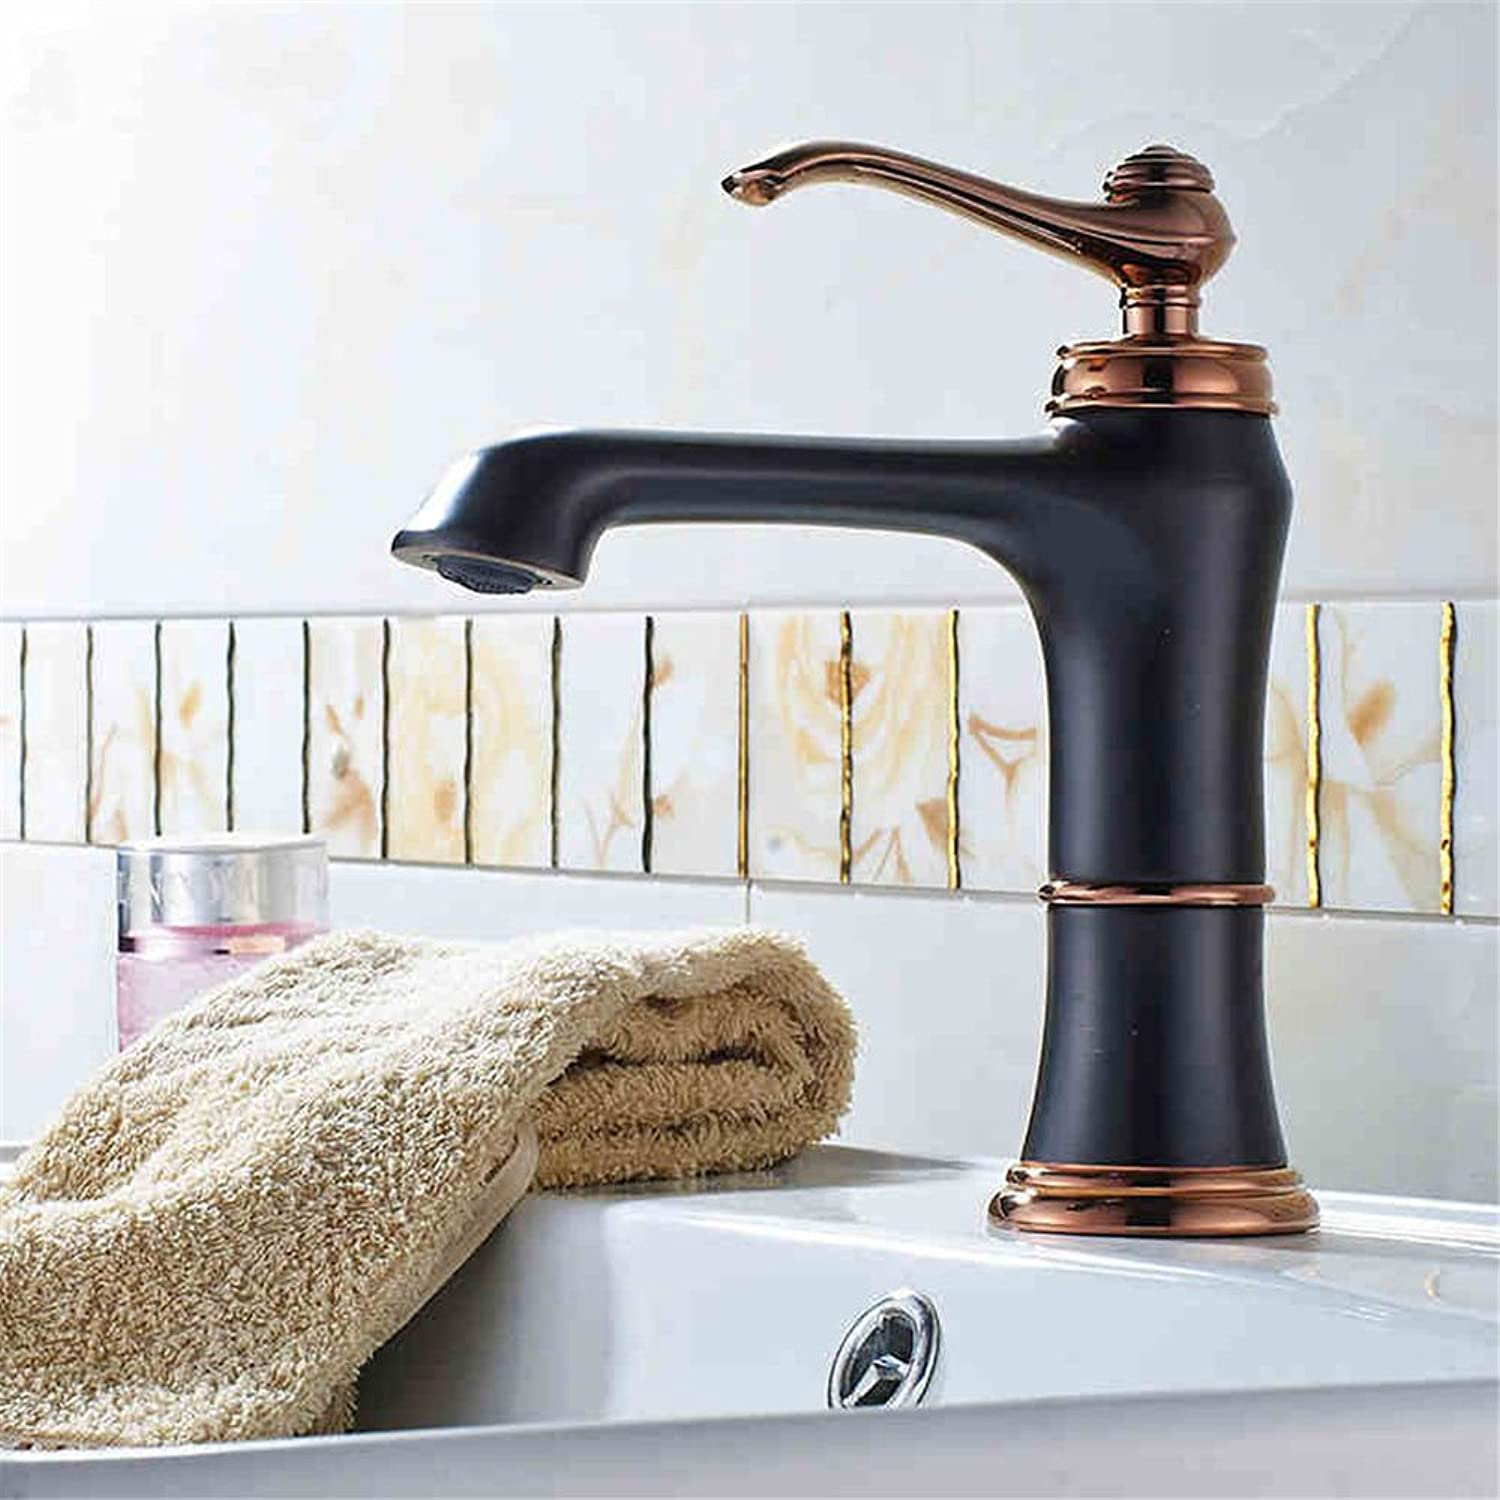 ETERNAL QUALITY Bathroom Sink Basin Tap Brass Mixer Tap Washroom Mixer Faucet The Copper Black mixer console basin mixer antique Vanity basin cold water tap black cock Ki